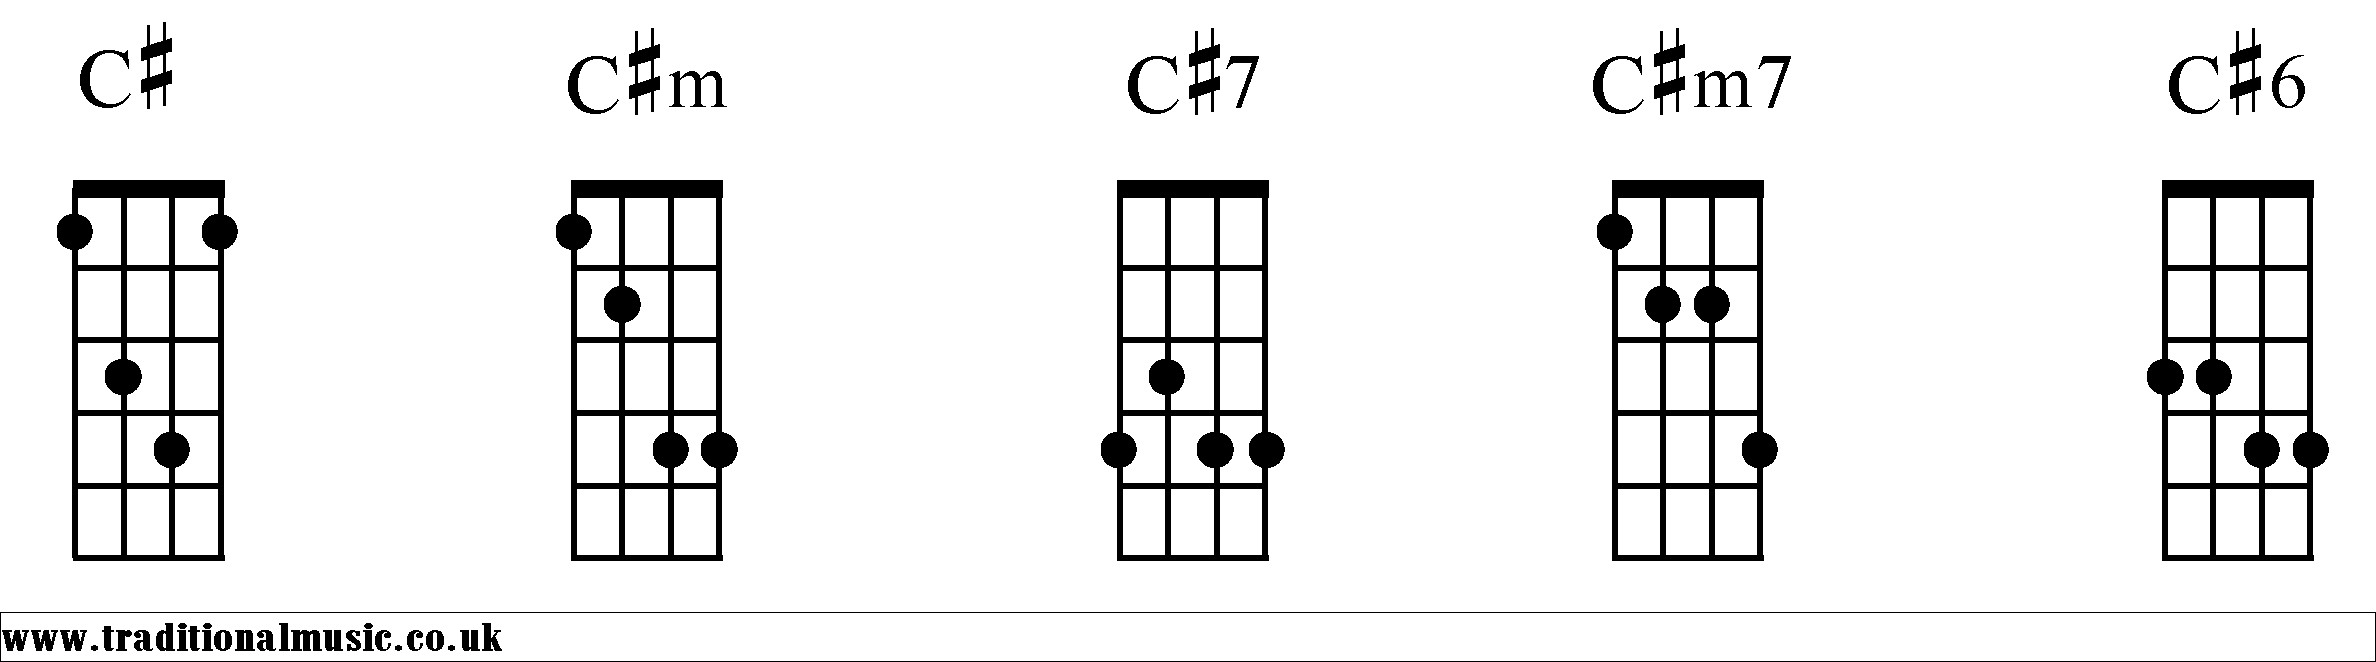 F sharp minor chord on guitar